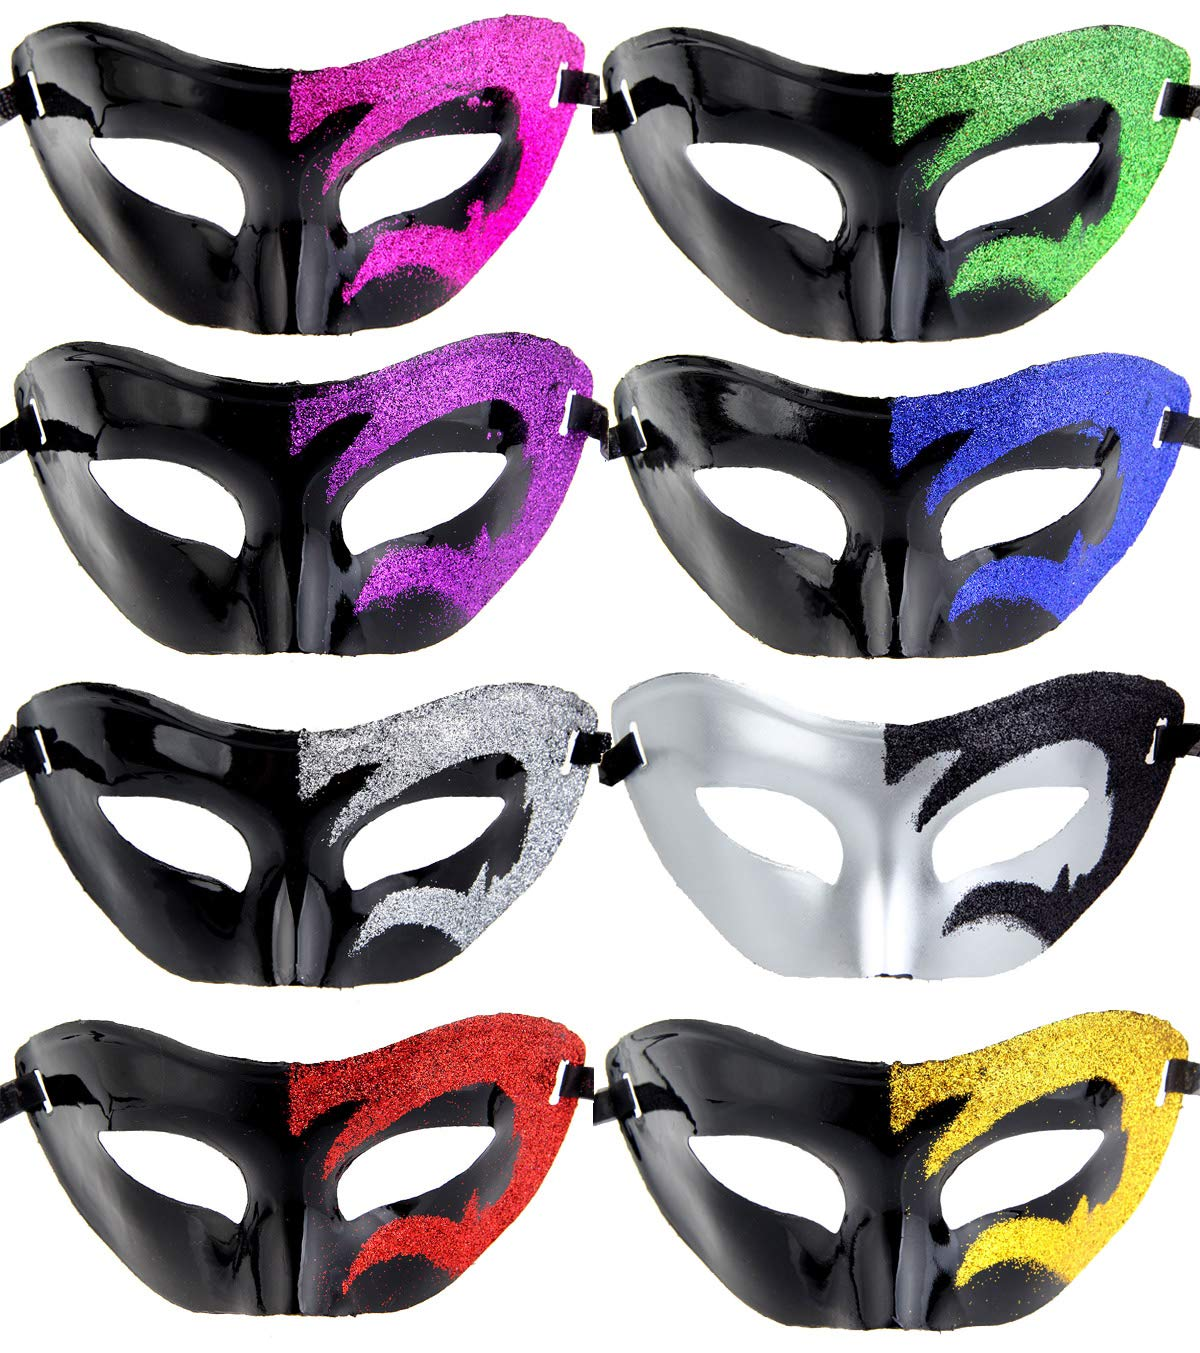 12pcs Set Evening Prom Venetian Masquerade Masks Costumes Party Accessory